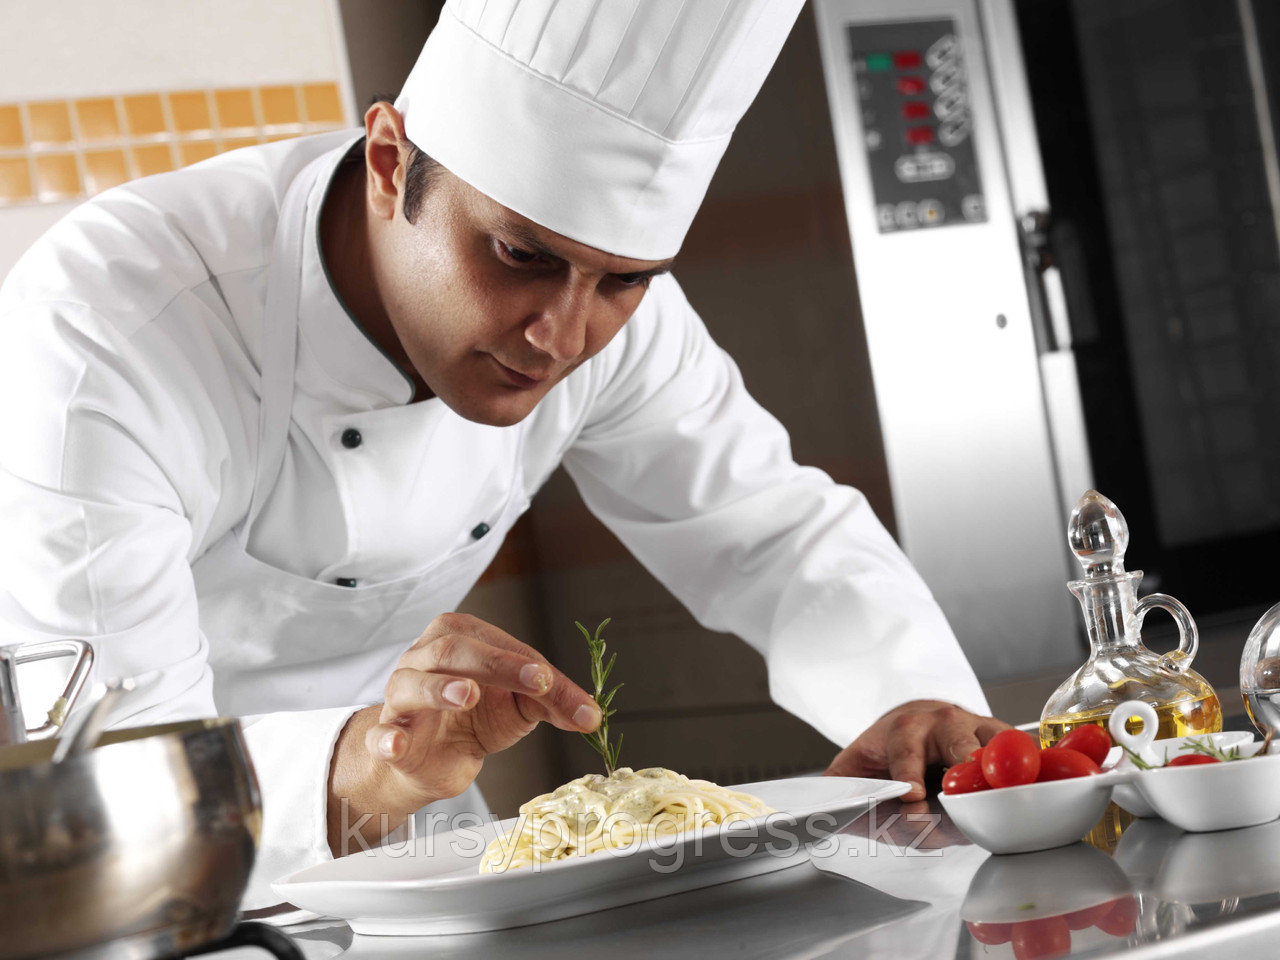 college essays cooking Below is an essay on culinary arts from anti essays, your source for research papers, essays, and term paper examples creativity, attention to detail, customer service, and measuring ability are all skills needed to become an executive chef.